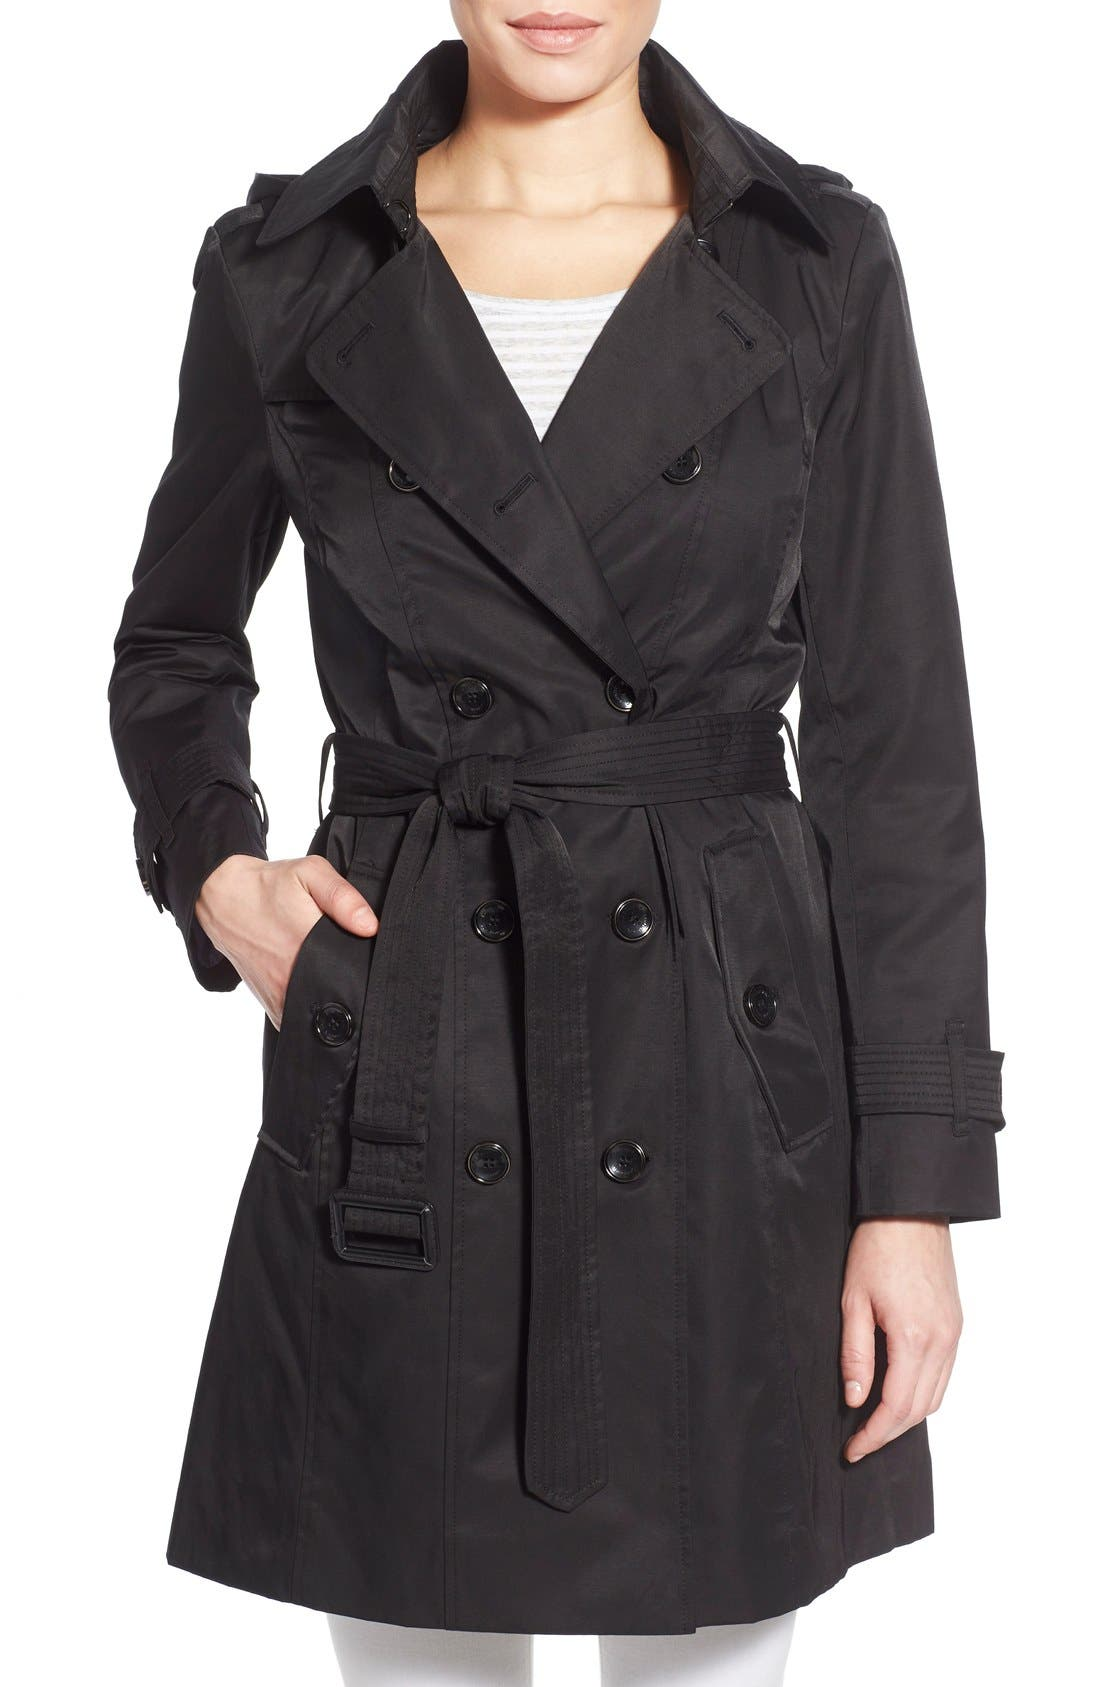 Alternate Image 1 Selected - London Fog Hooded Double Breasted Trench Coat (Regular & Petite)